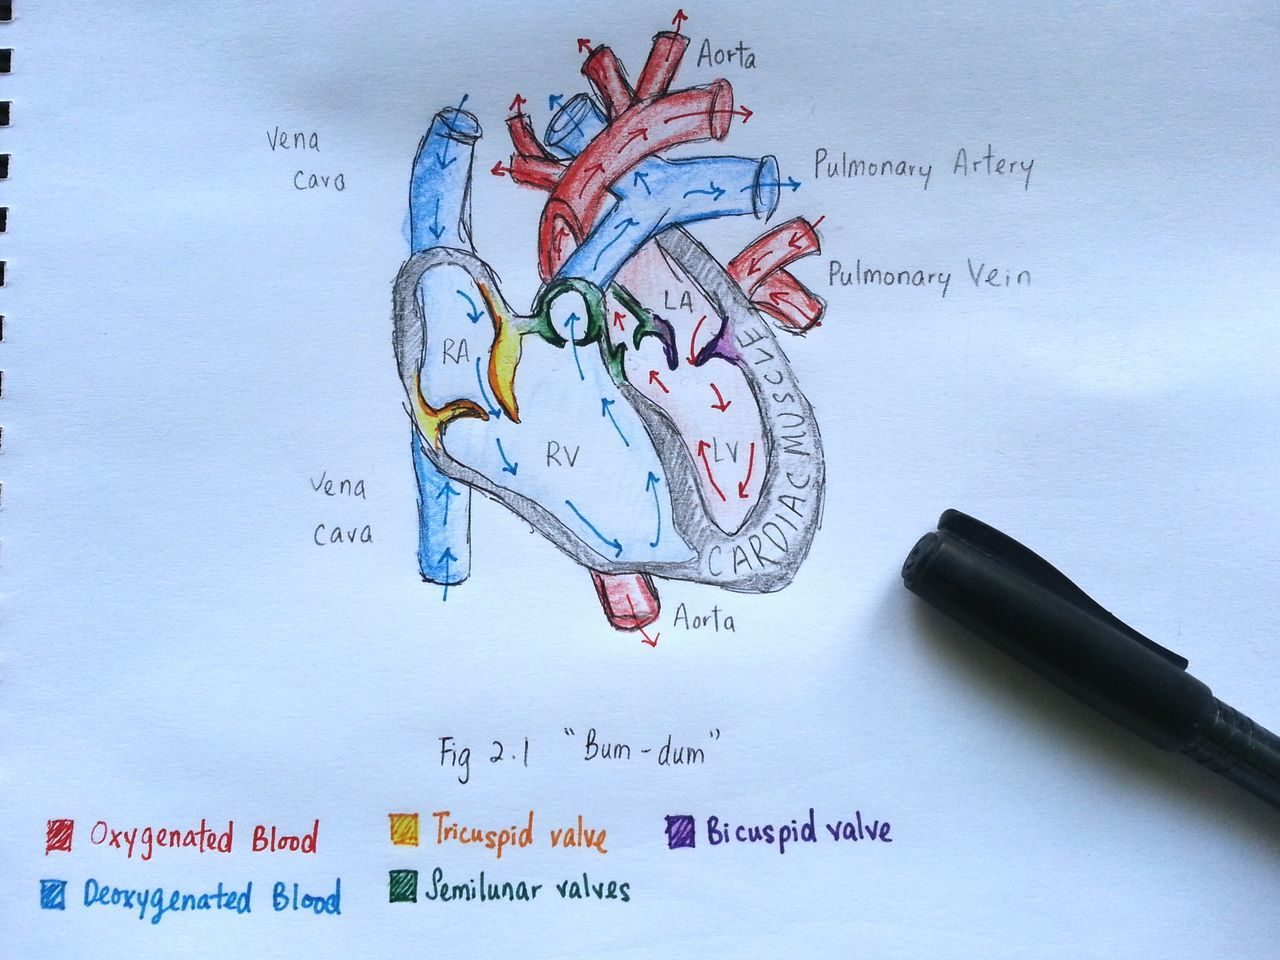 Just a little bit of studying :) Notebook Studying Study Time Notes Science Class Science Biology Heart Study Studying Hard Making Notes Diagram Drawing